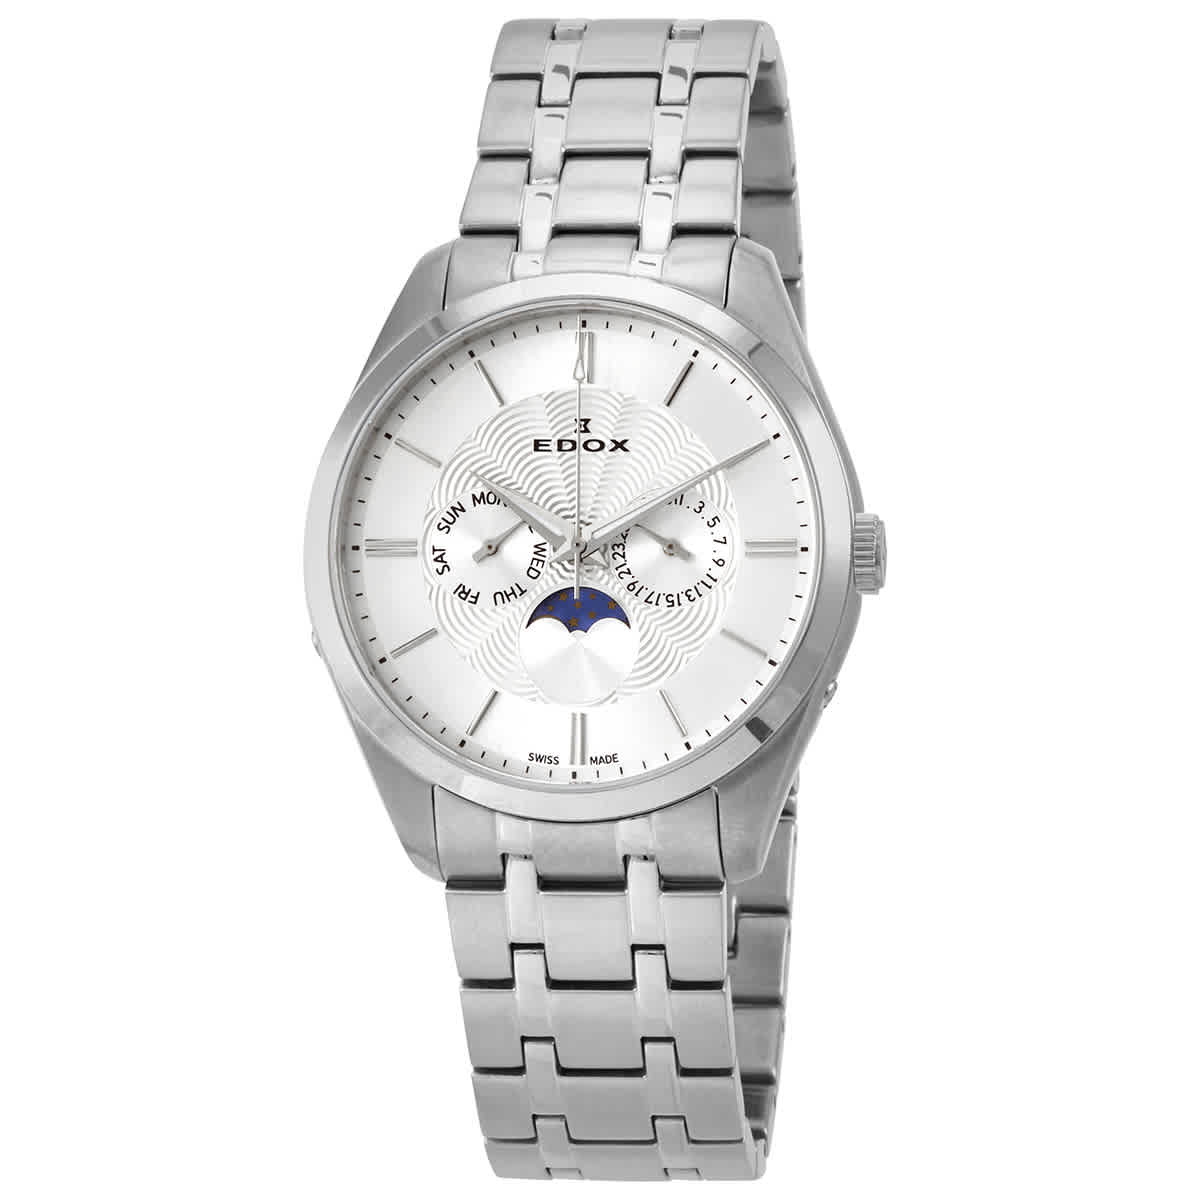 Edox Moonphase Date Silver Dial Mens Watch 40008-3m-ain In Metallic